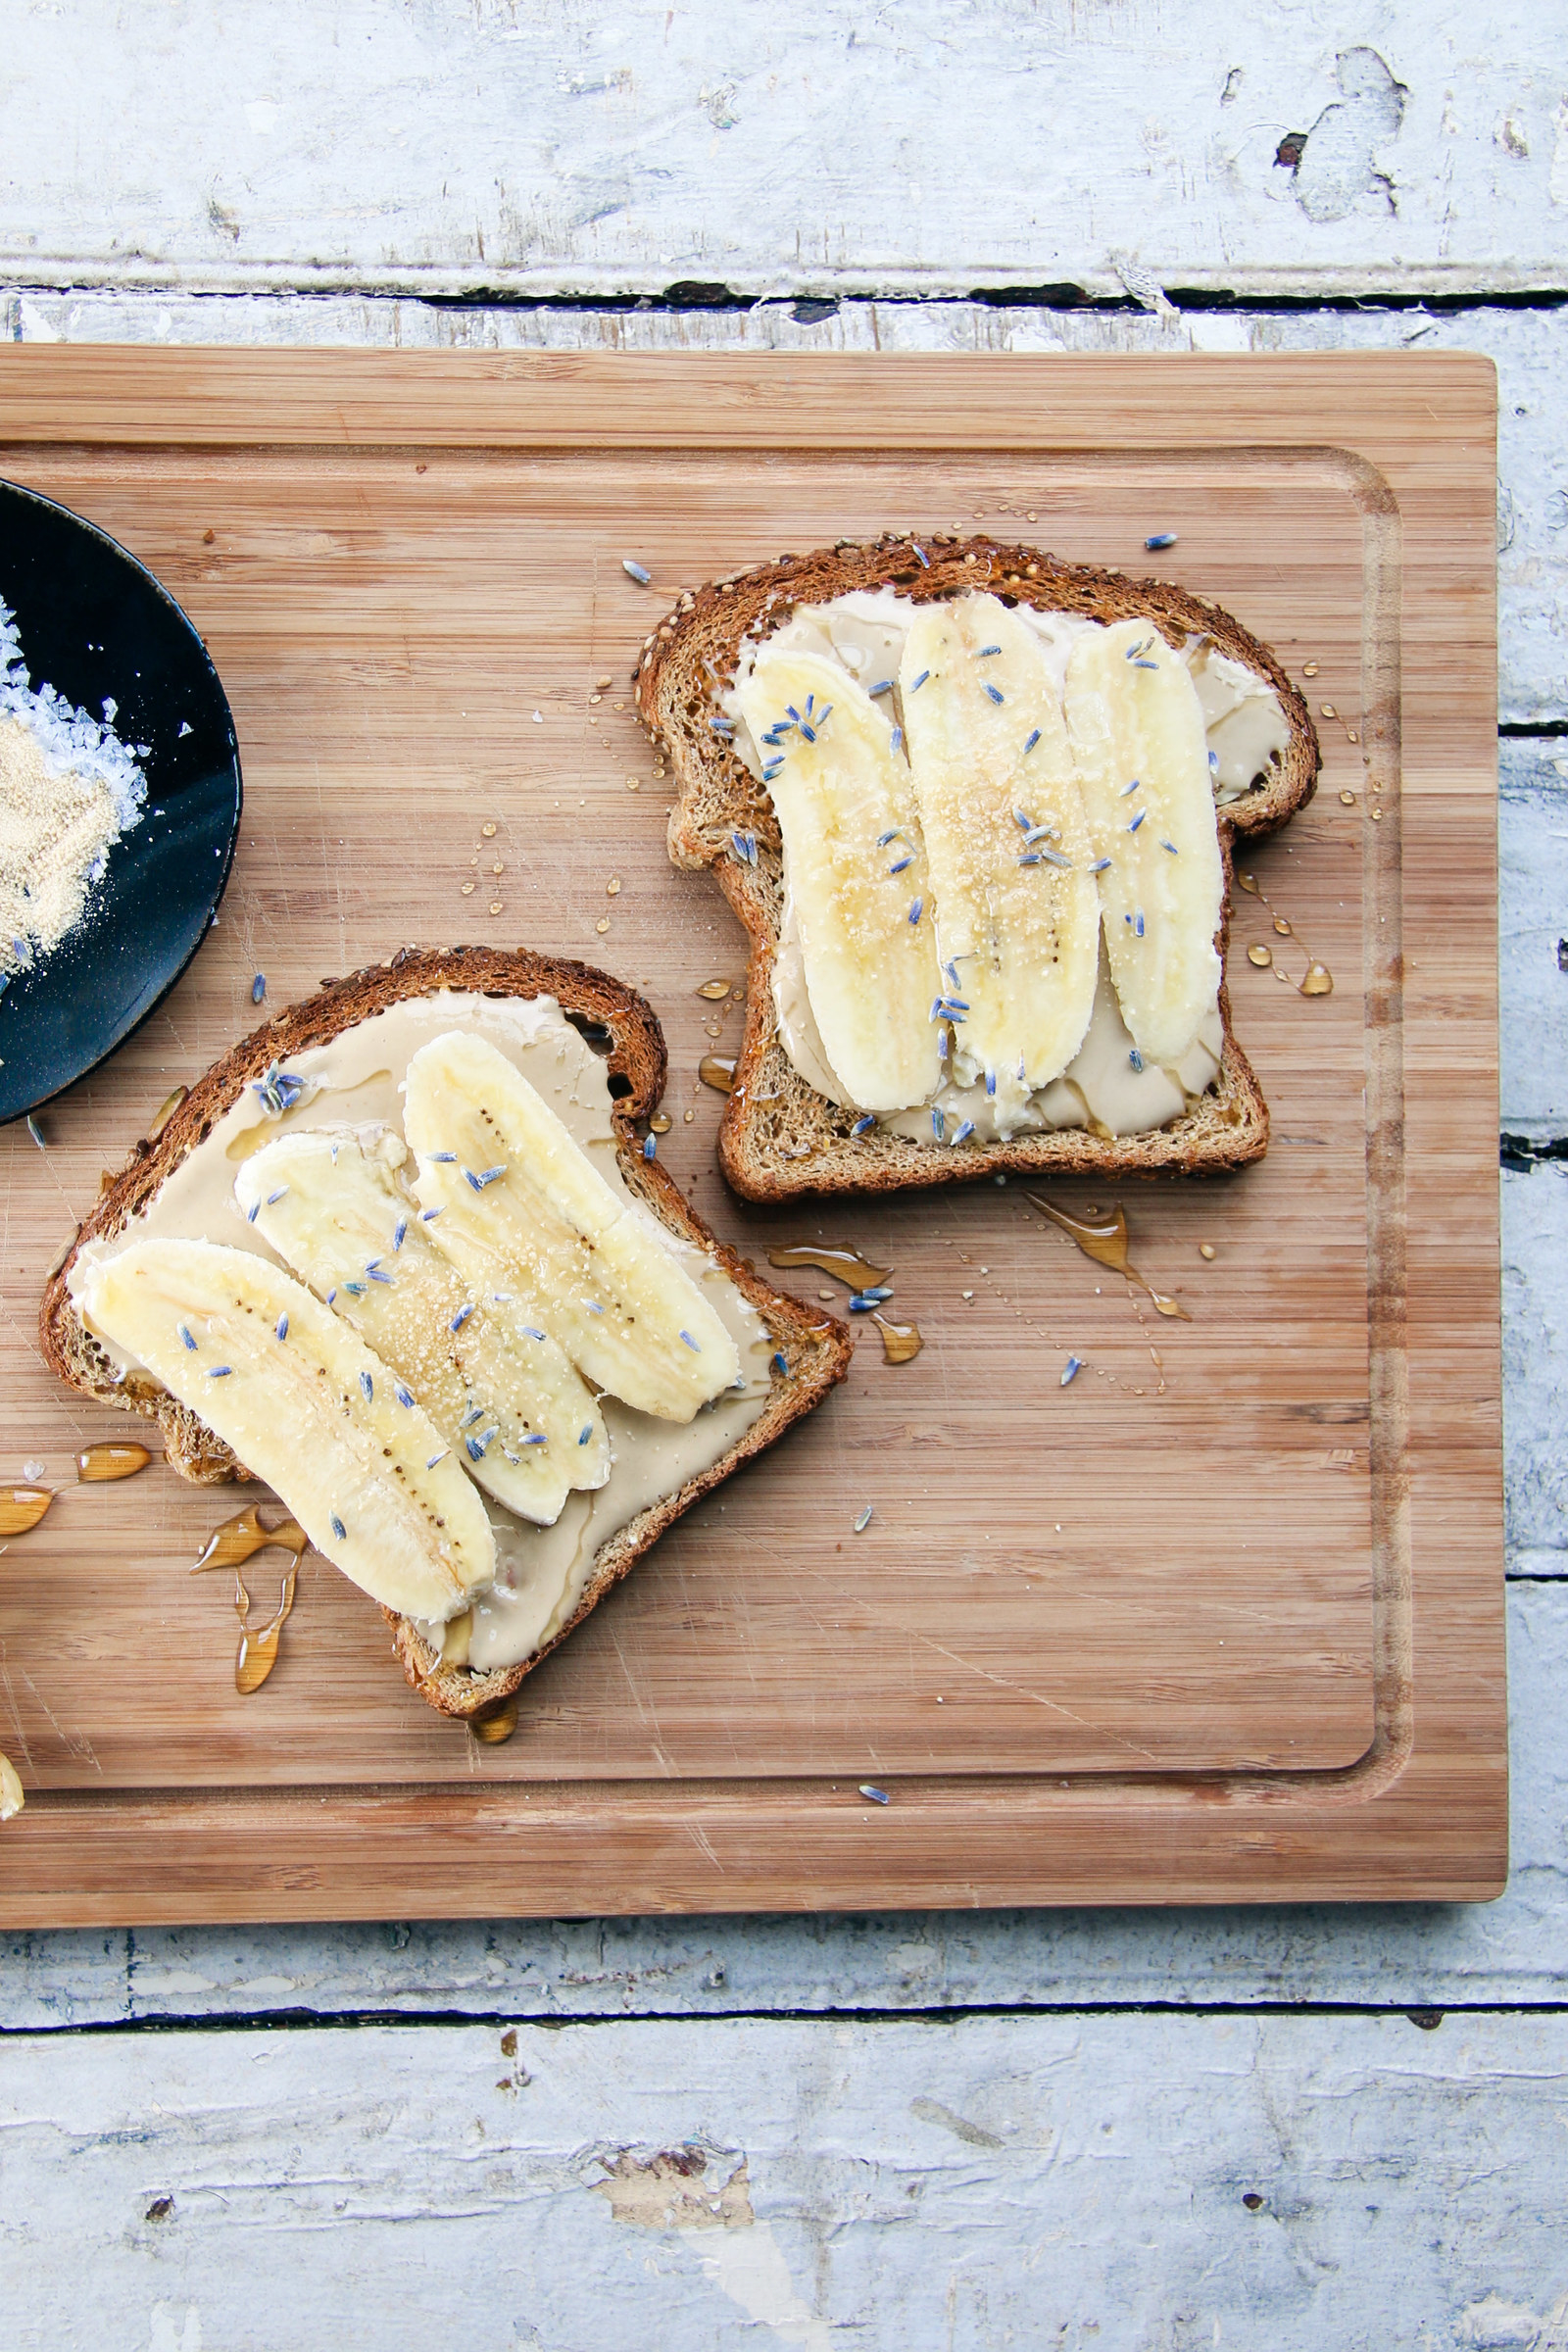 17 Delicious Ways To Eat Toast For Breakfast, Lunch, And Dinner